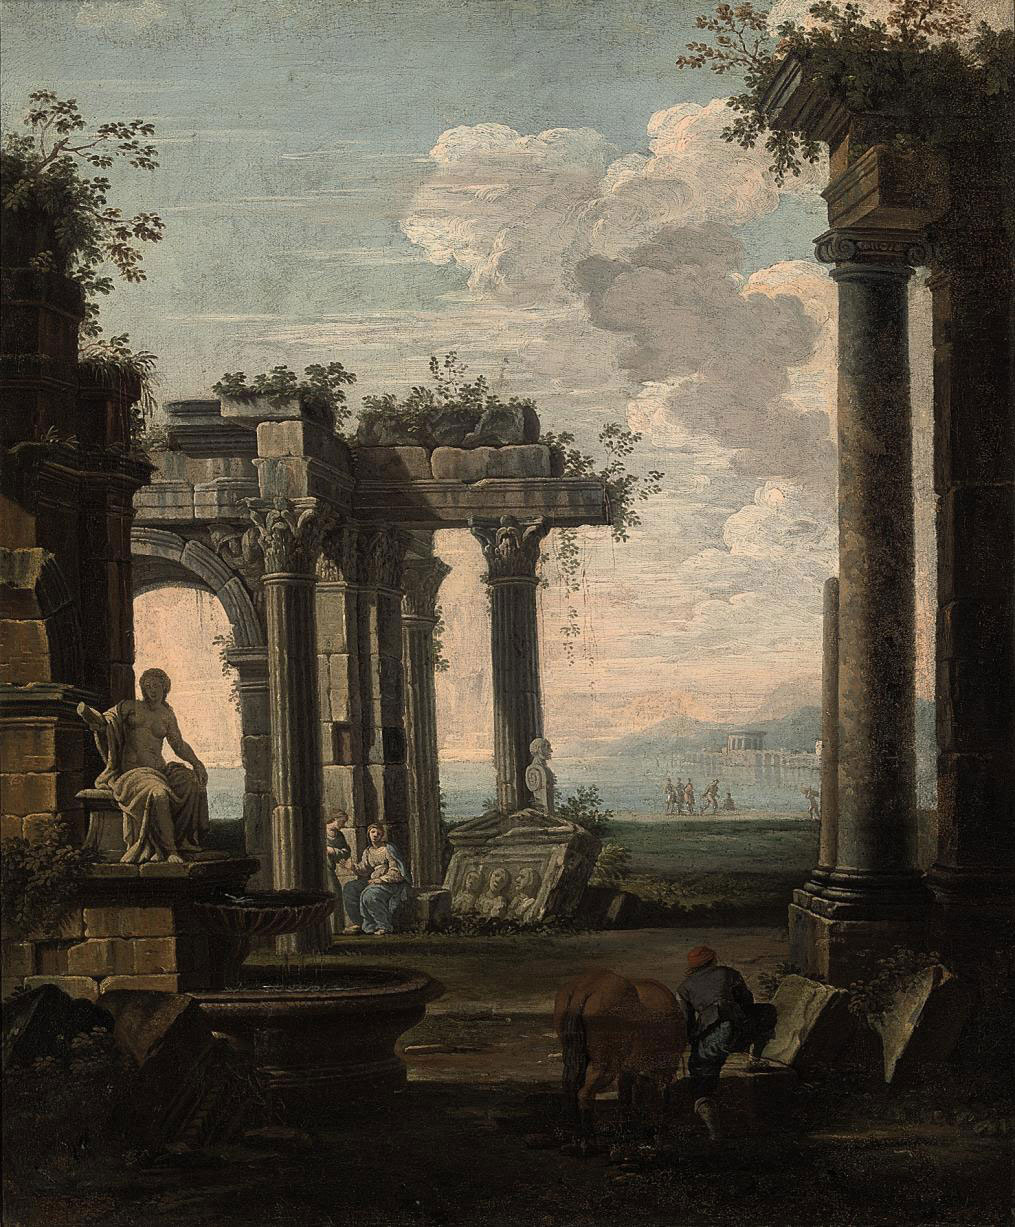 A peasant watering his horse amongst classical ruins